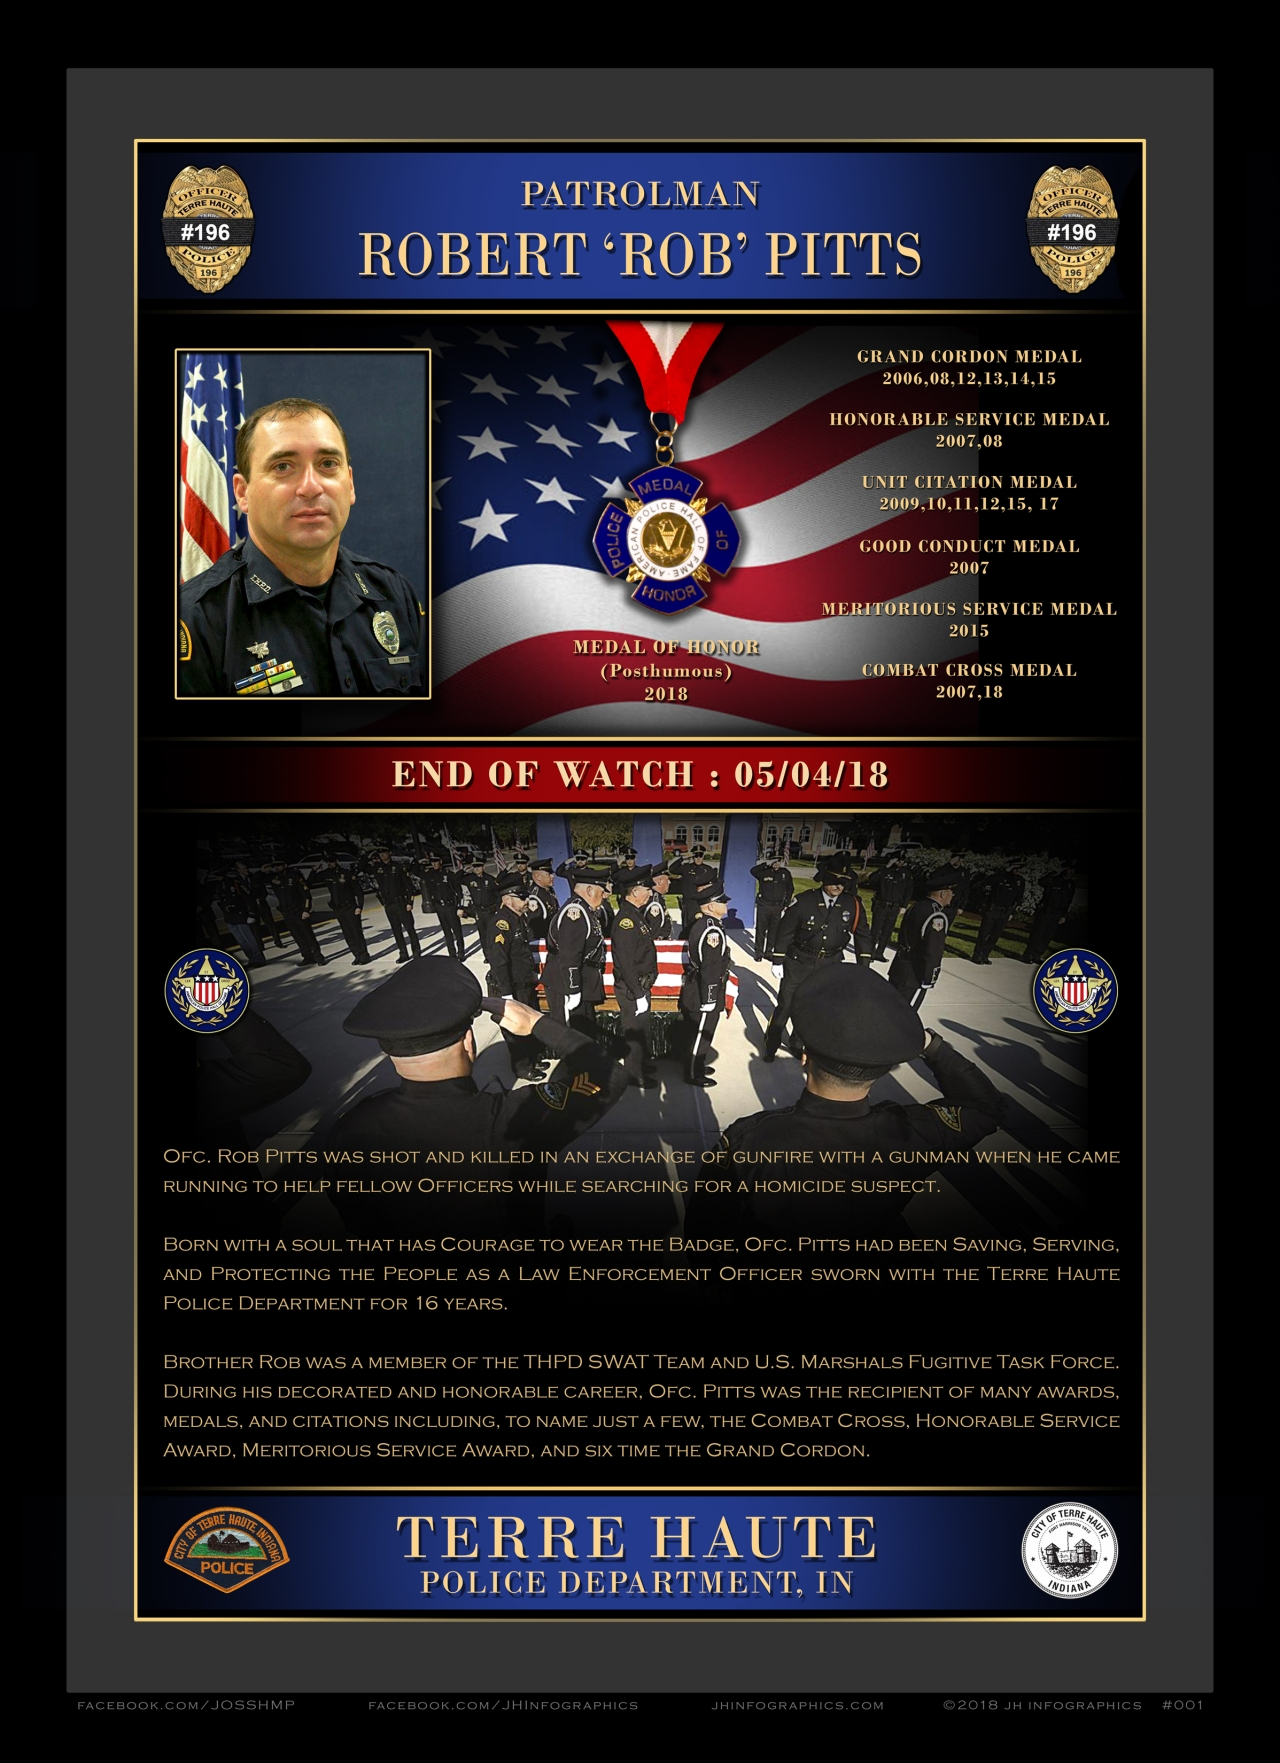 Officer Robert Shawn Pitts